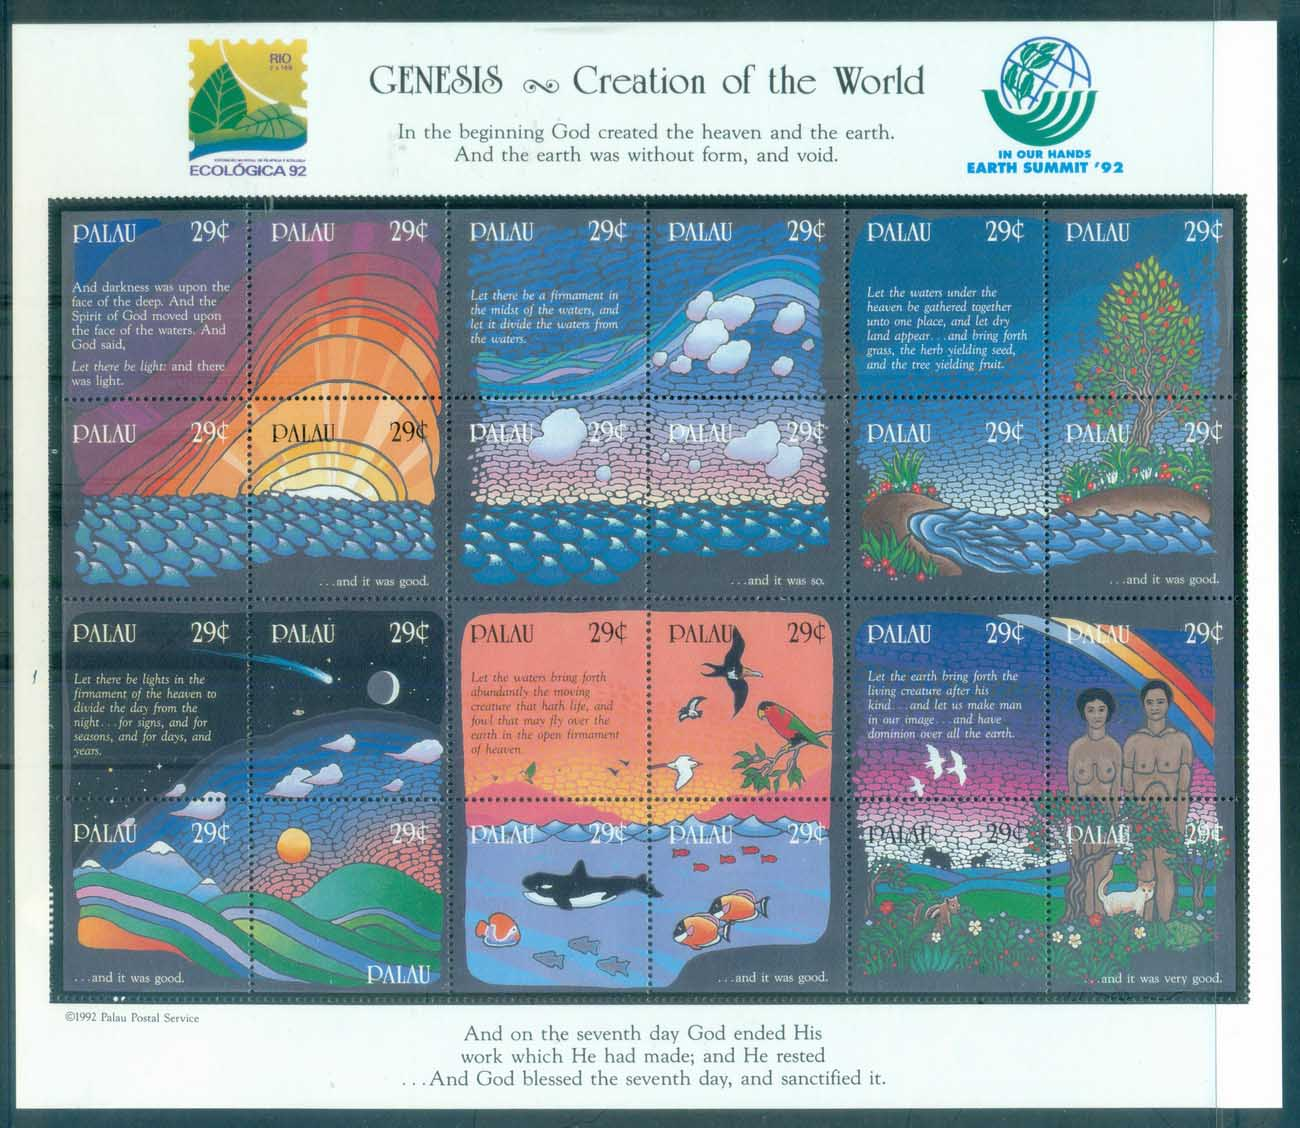 Palau 1992 Genesis, Creation of the World Sheetlet MUH